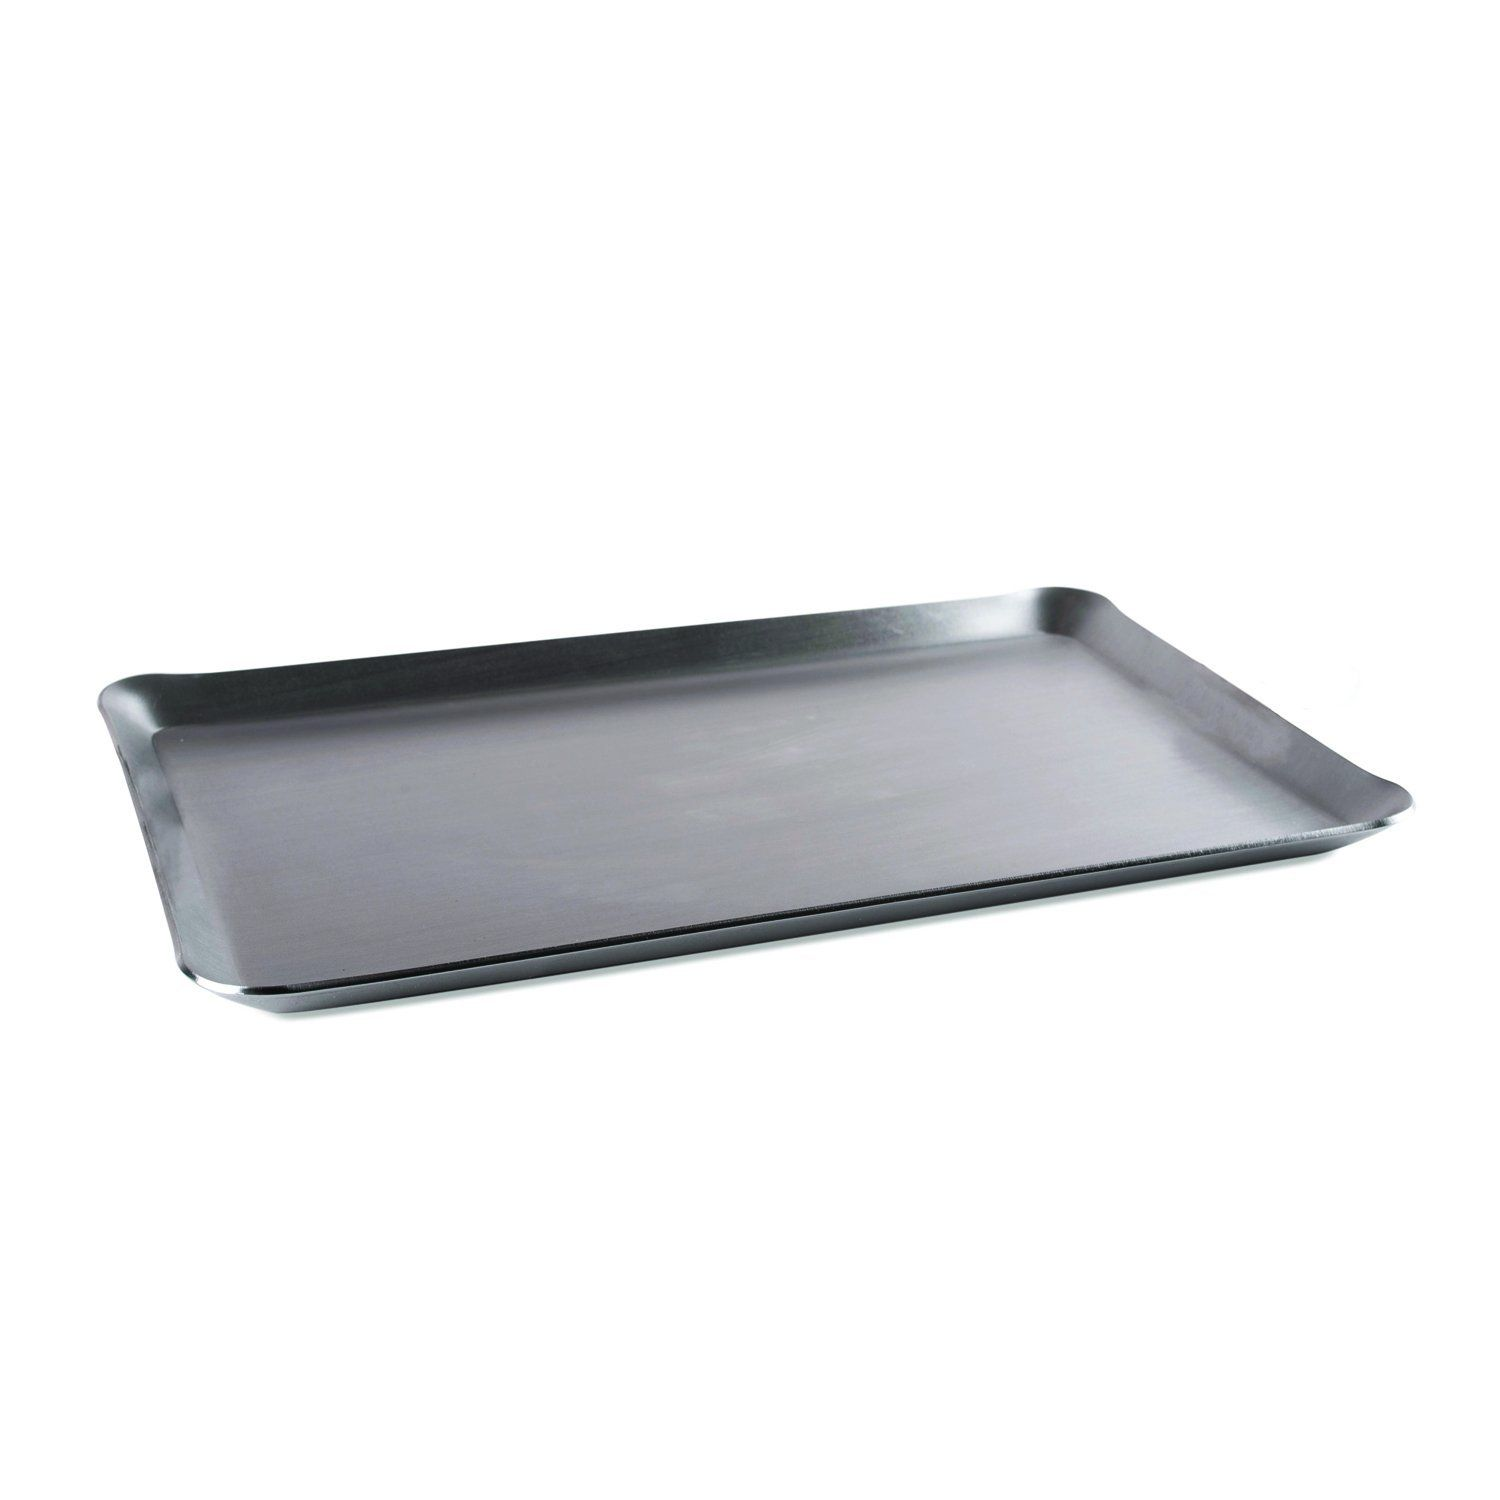 Stansport 12 Gauge Steel Griddle 10 X 16 Inch Details Can Be Found By Clicking On The Image Camping Cookware 10 Things Steel